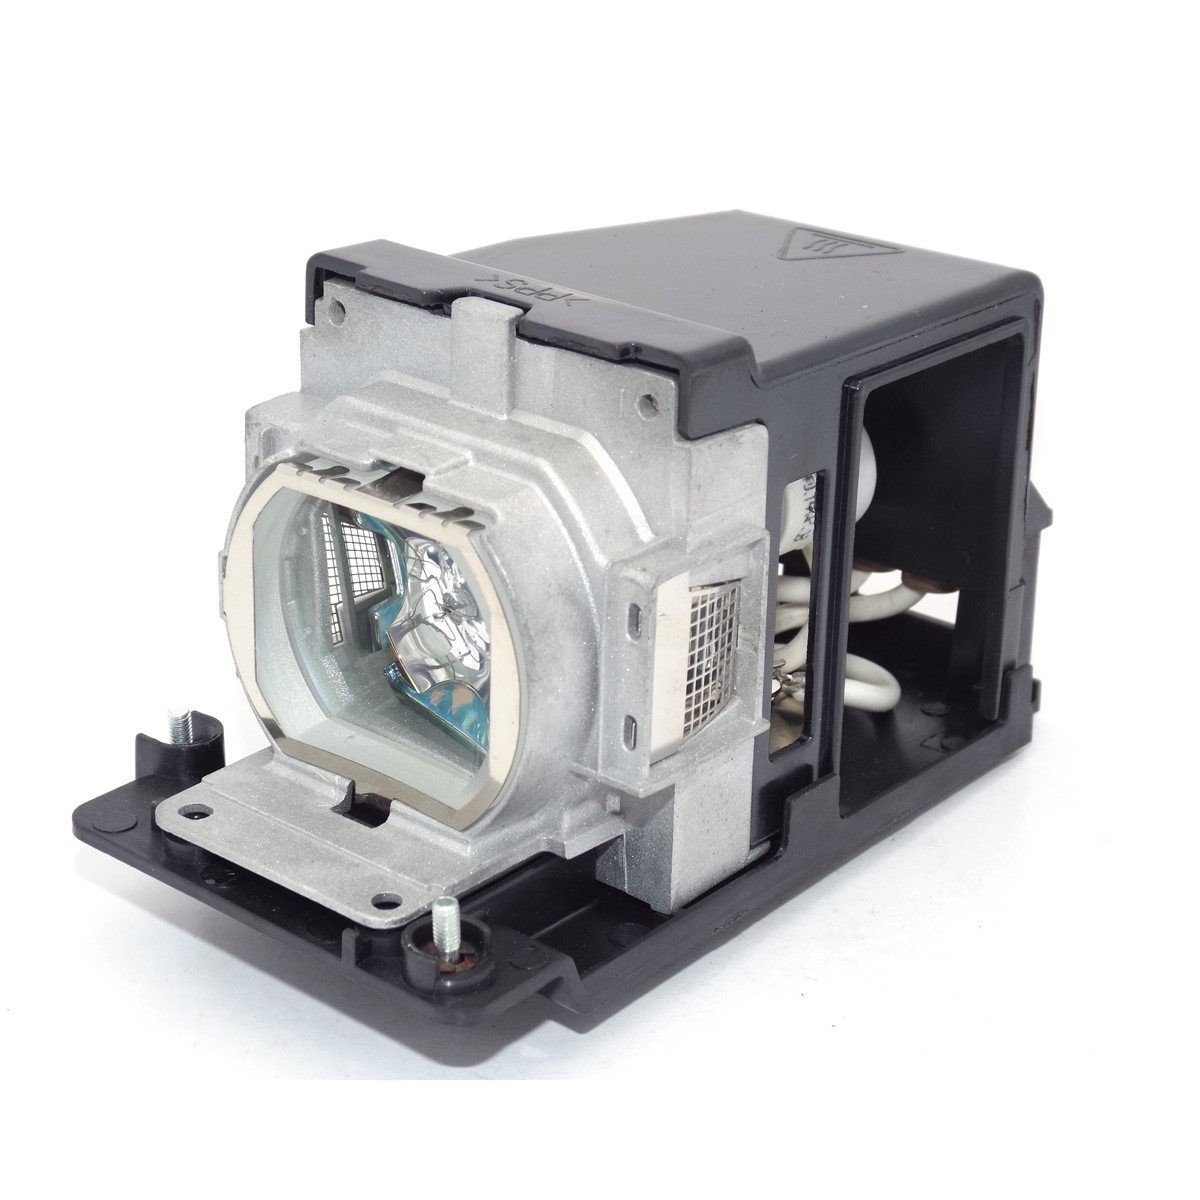 Projector Lamp Bulb TLPLW11 TLP-LW11 for TOSHIBA TLP-XC2500 TLP-X2500 TDP-XD3000 TLP-X2000EDU With housing free shipping projector bare lamp tlplw11 for toshiba tlp x2000edu tlp xc2500au tlp xe30u projector 3pcs lot